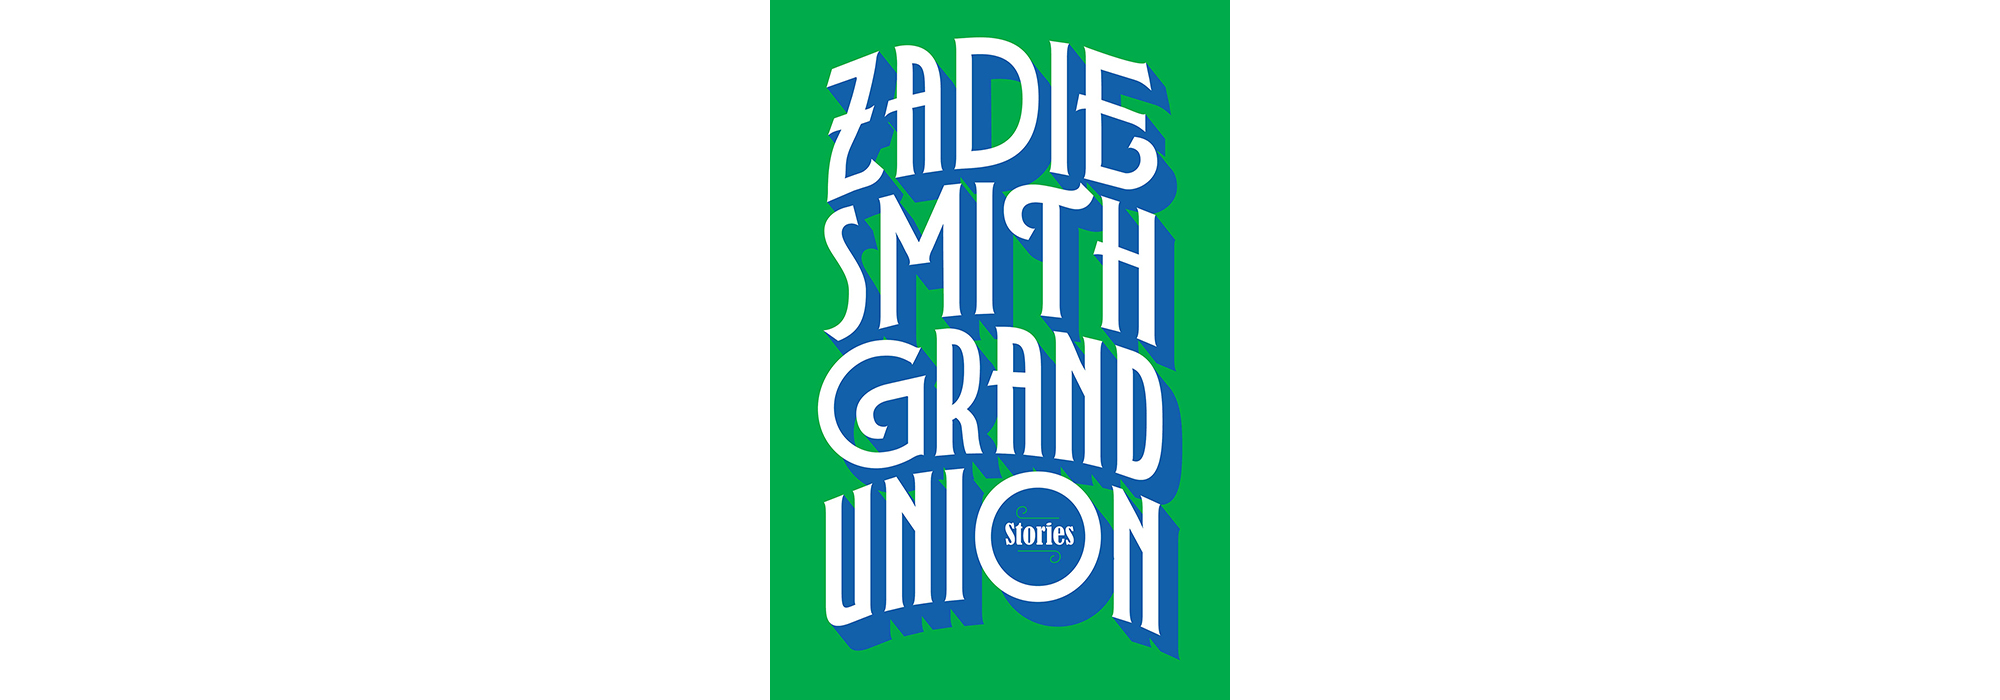 Cover of Grand Union, by Zadie Smith